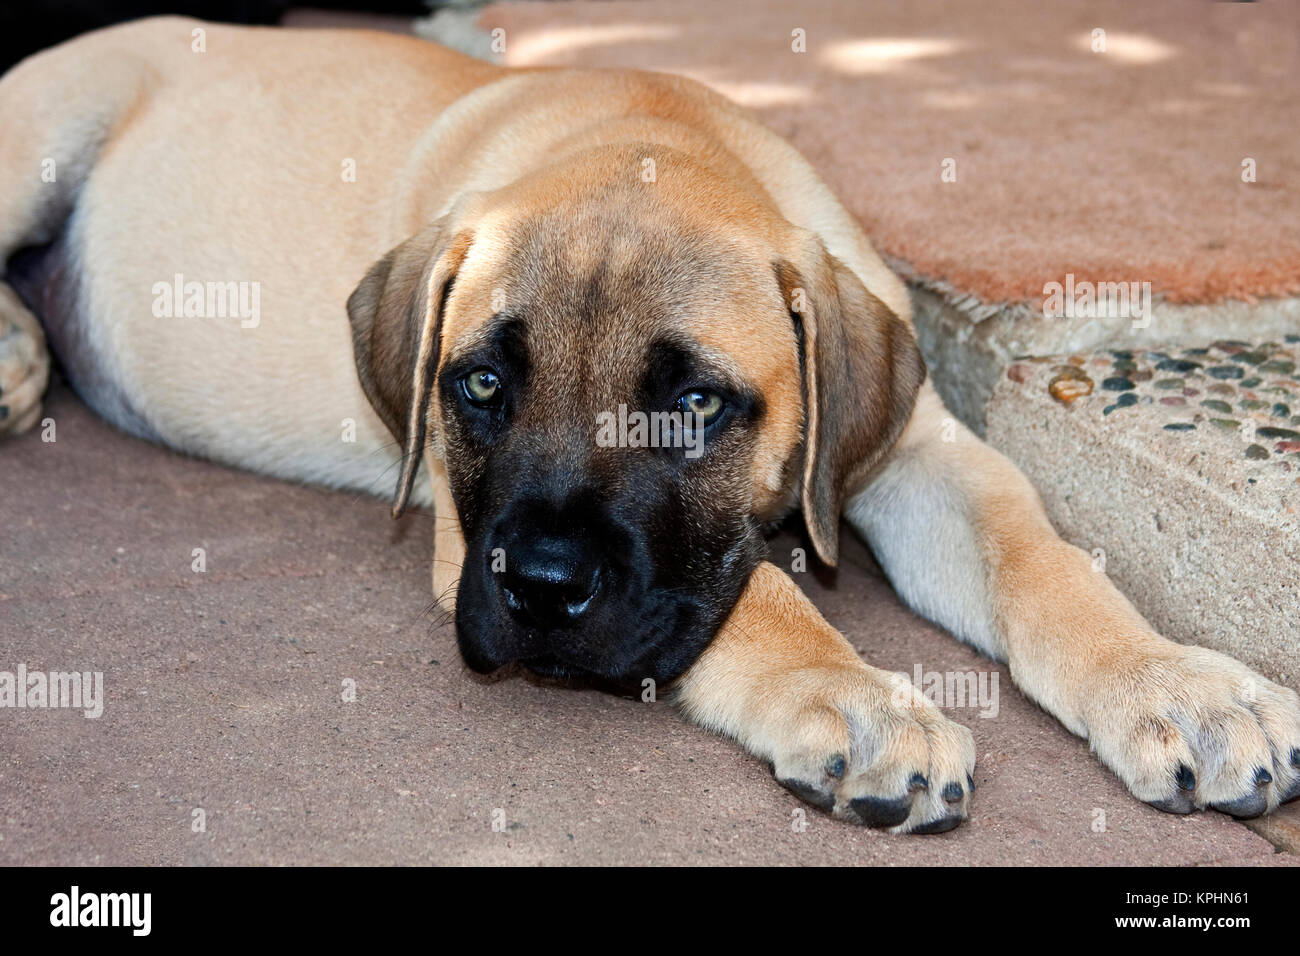 USA, California. Mastiff puppy lying on cement looking up at you. - Stock Image